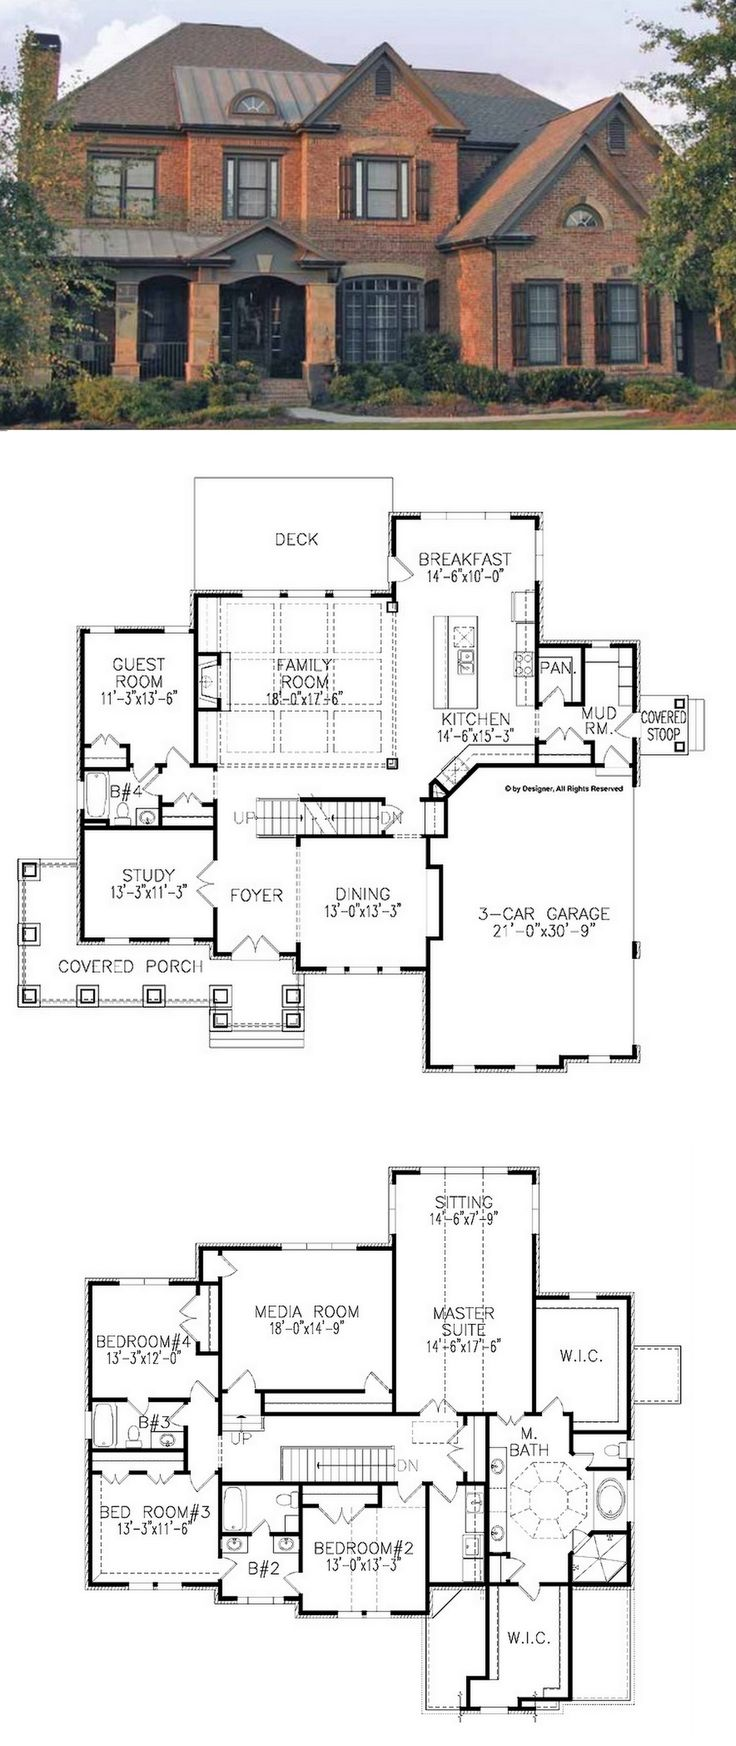 25  best ideas about Bedroom Floor Plans on Pinterest   Design floor plans   Architectural floor plans and Open plan house. 25  best ideas about Bedroom Floor Plans on Pinterest   Design